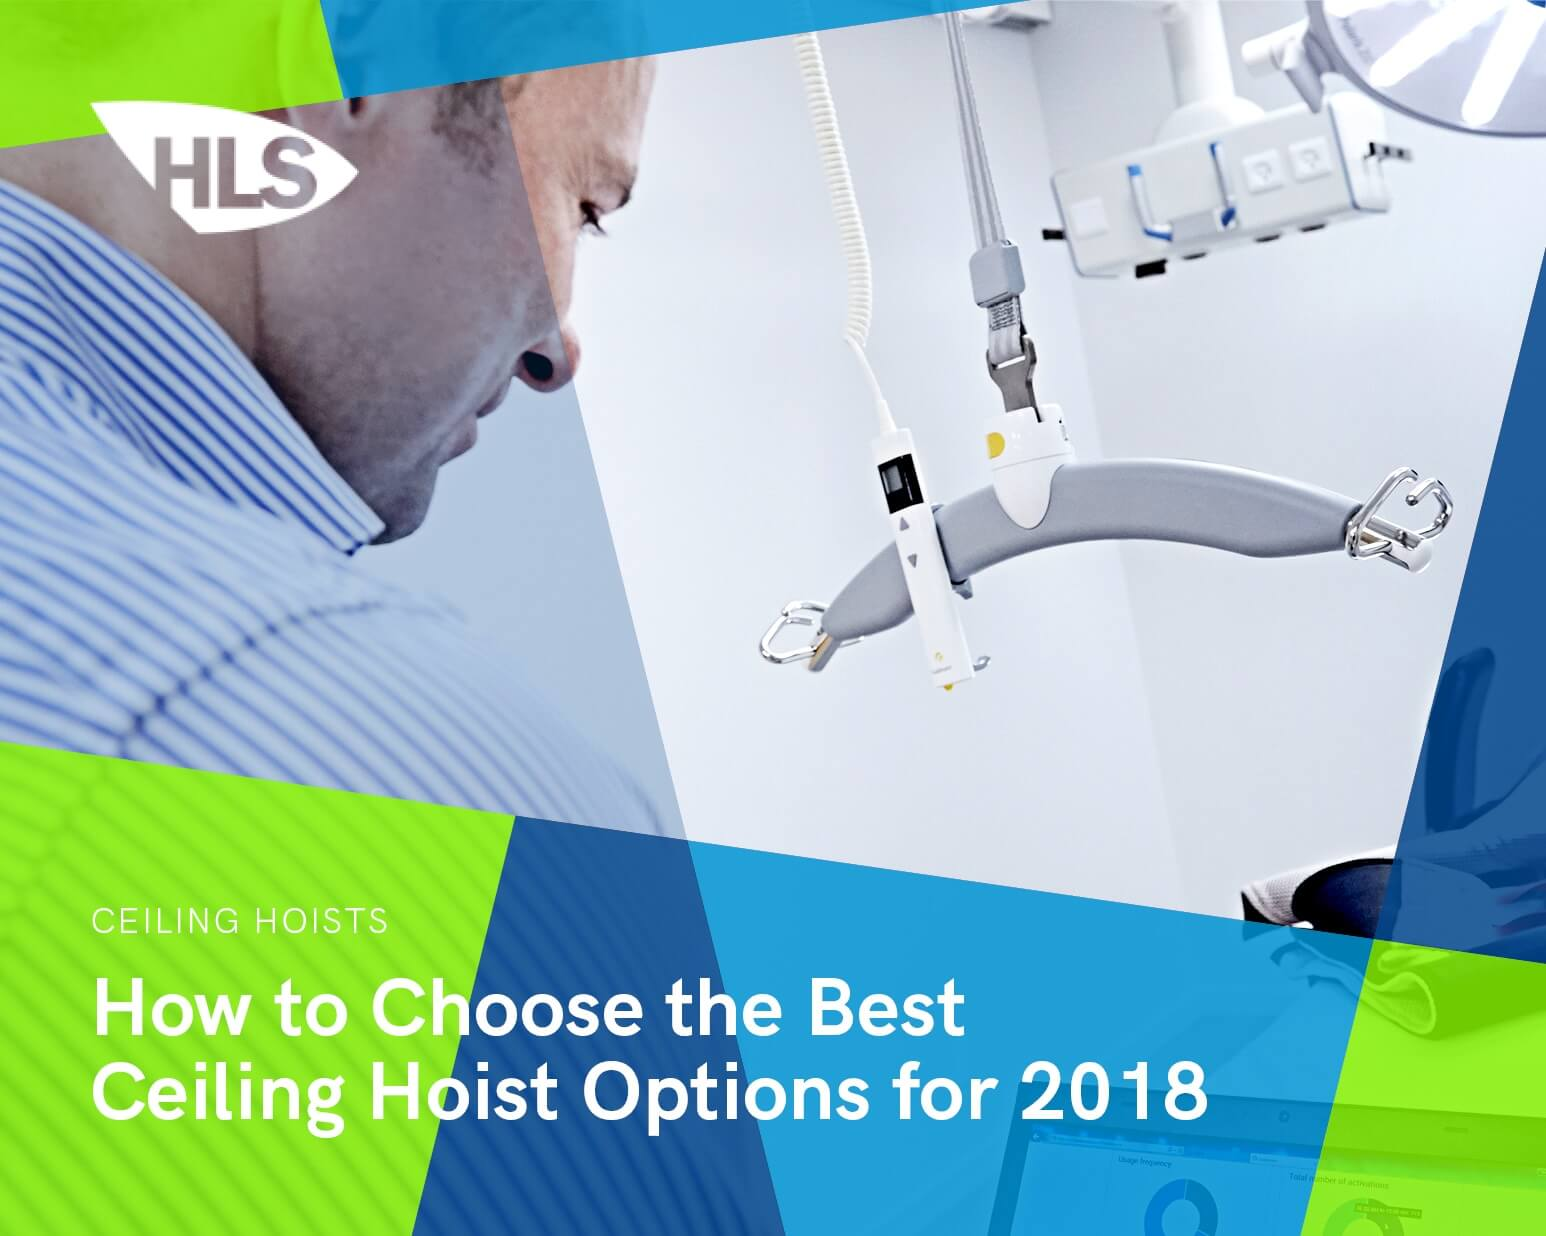 How to Choose the Best Ceiling Hoist Options for 2018